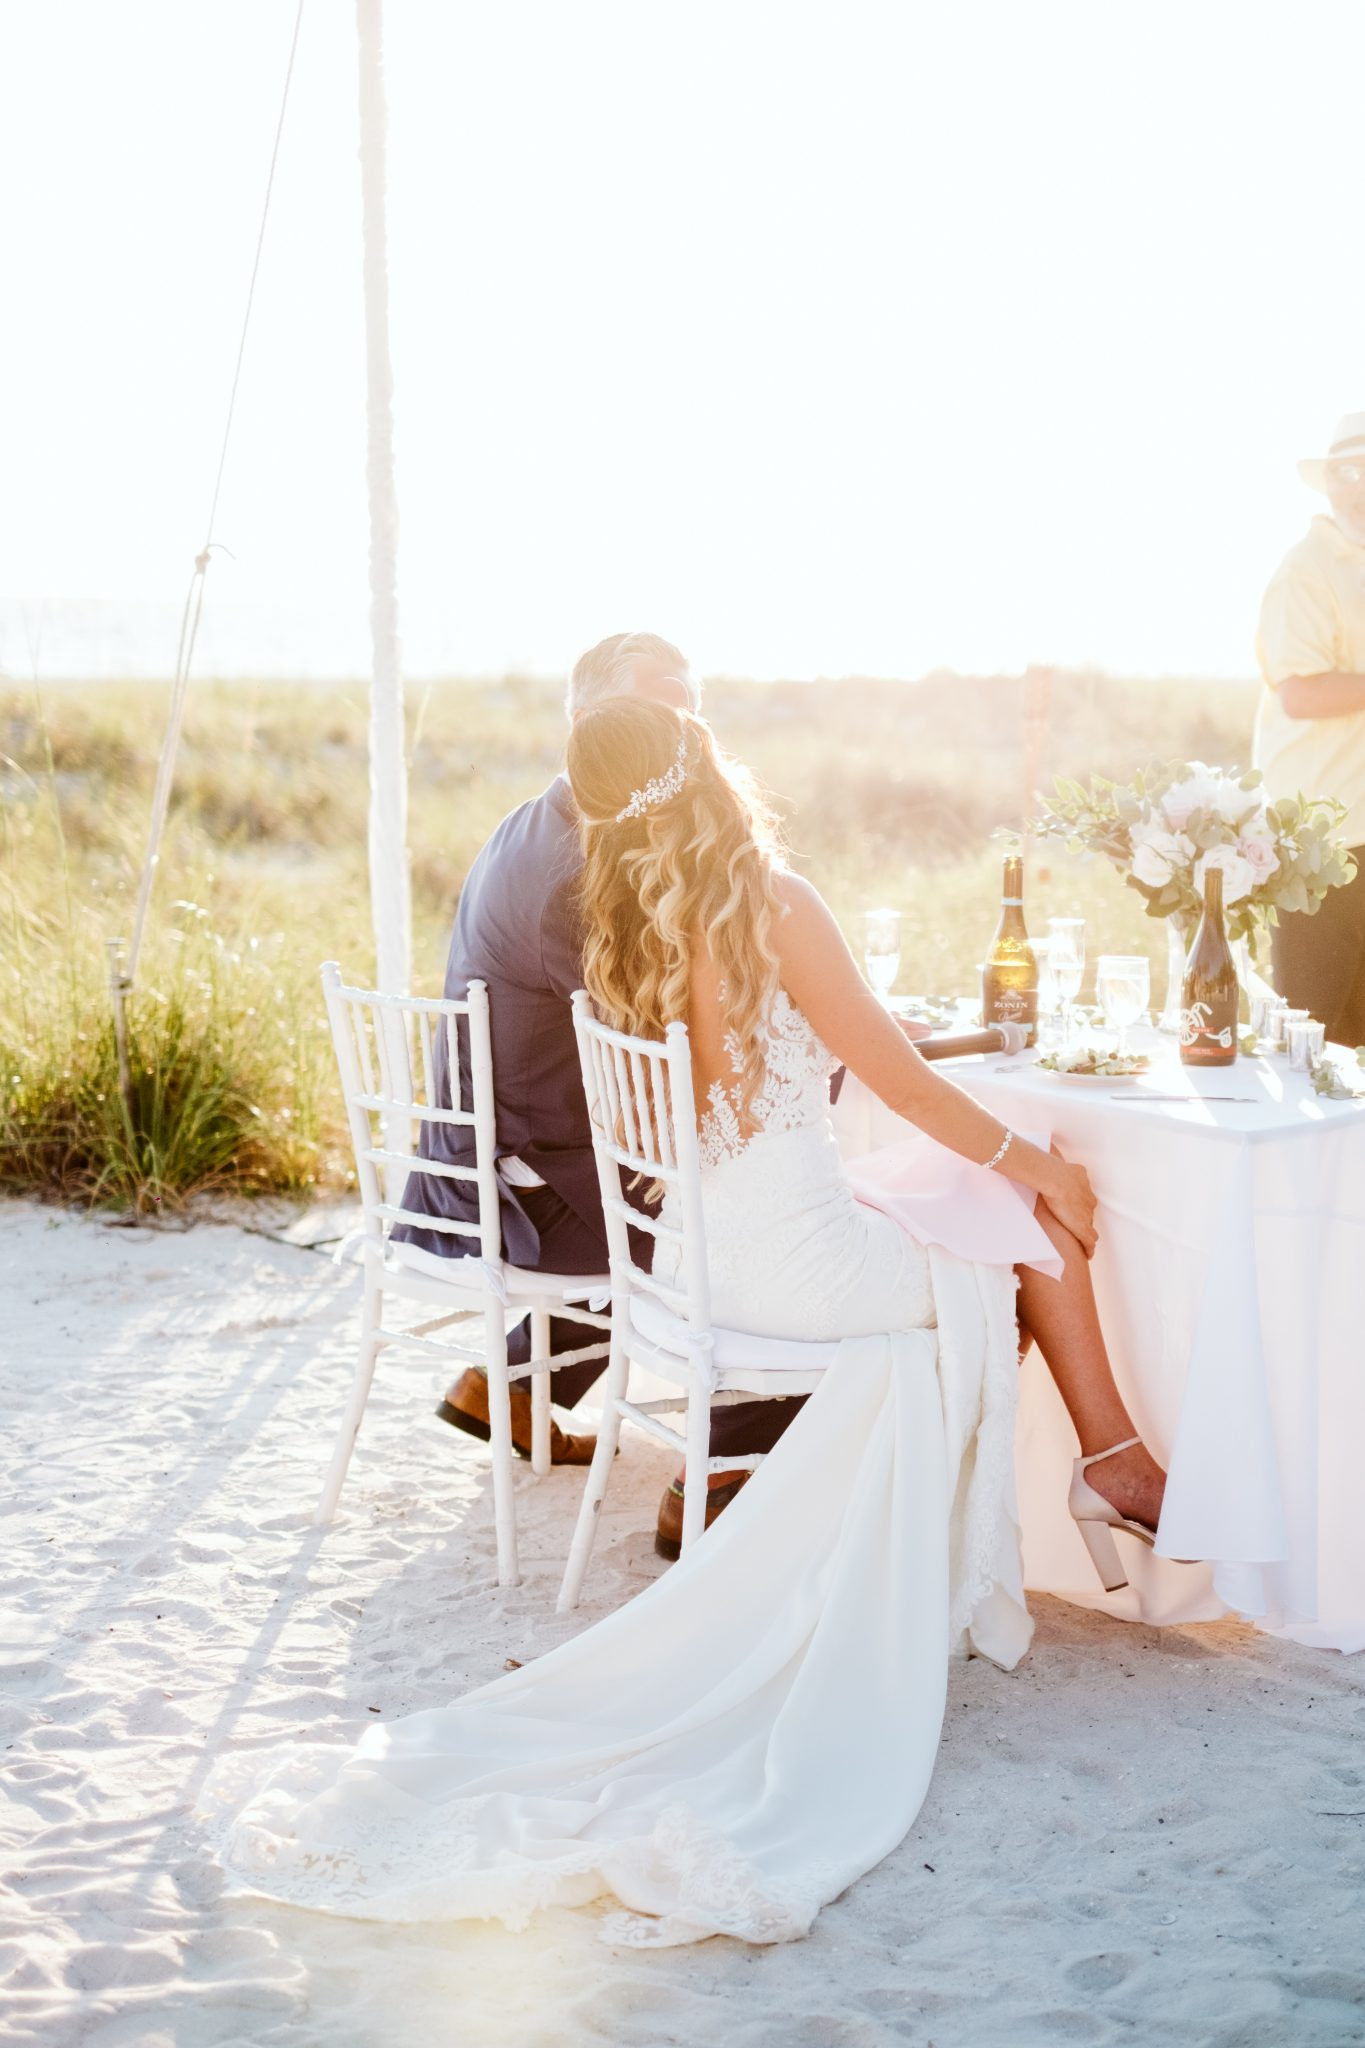 Tampa-Wedding-Photographer_Rebecca-and-Josh_Anna-Maria-Island-Boho-Beach-Wedding_Anna-Maria-Island-FL_01811